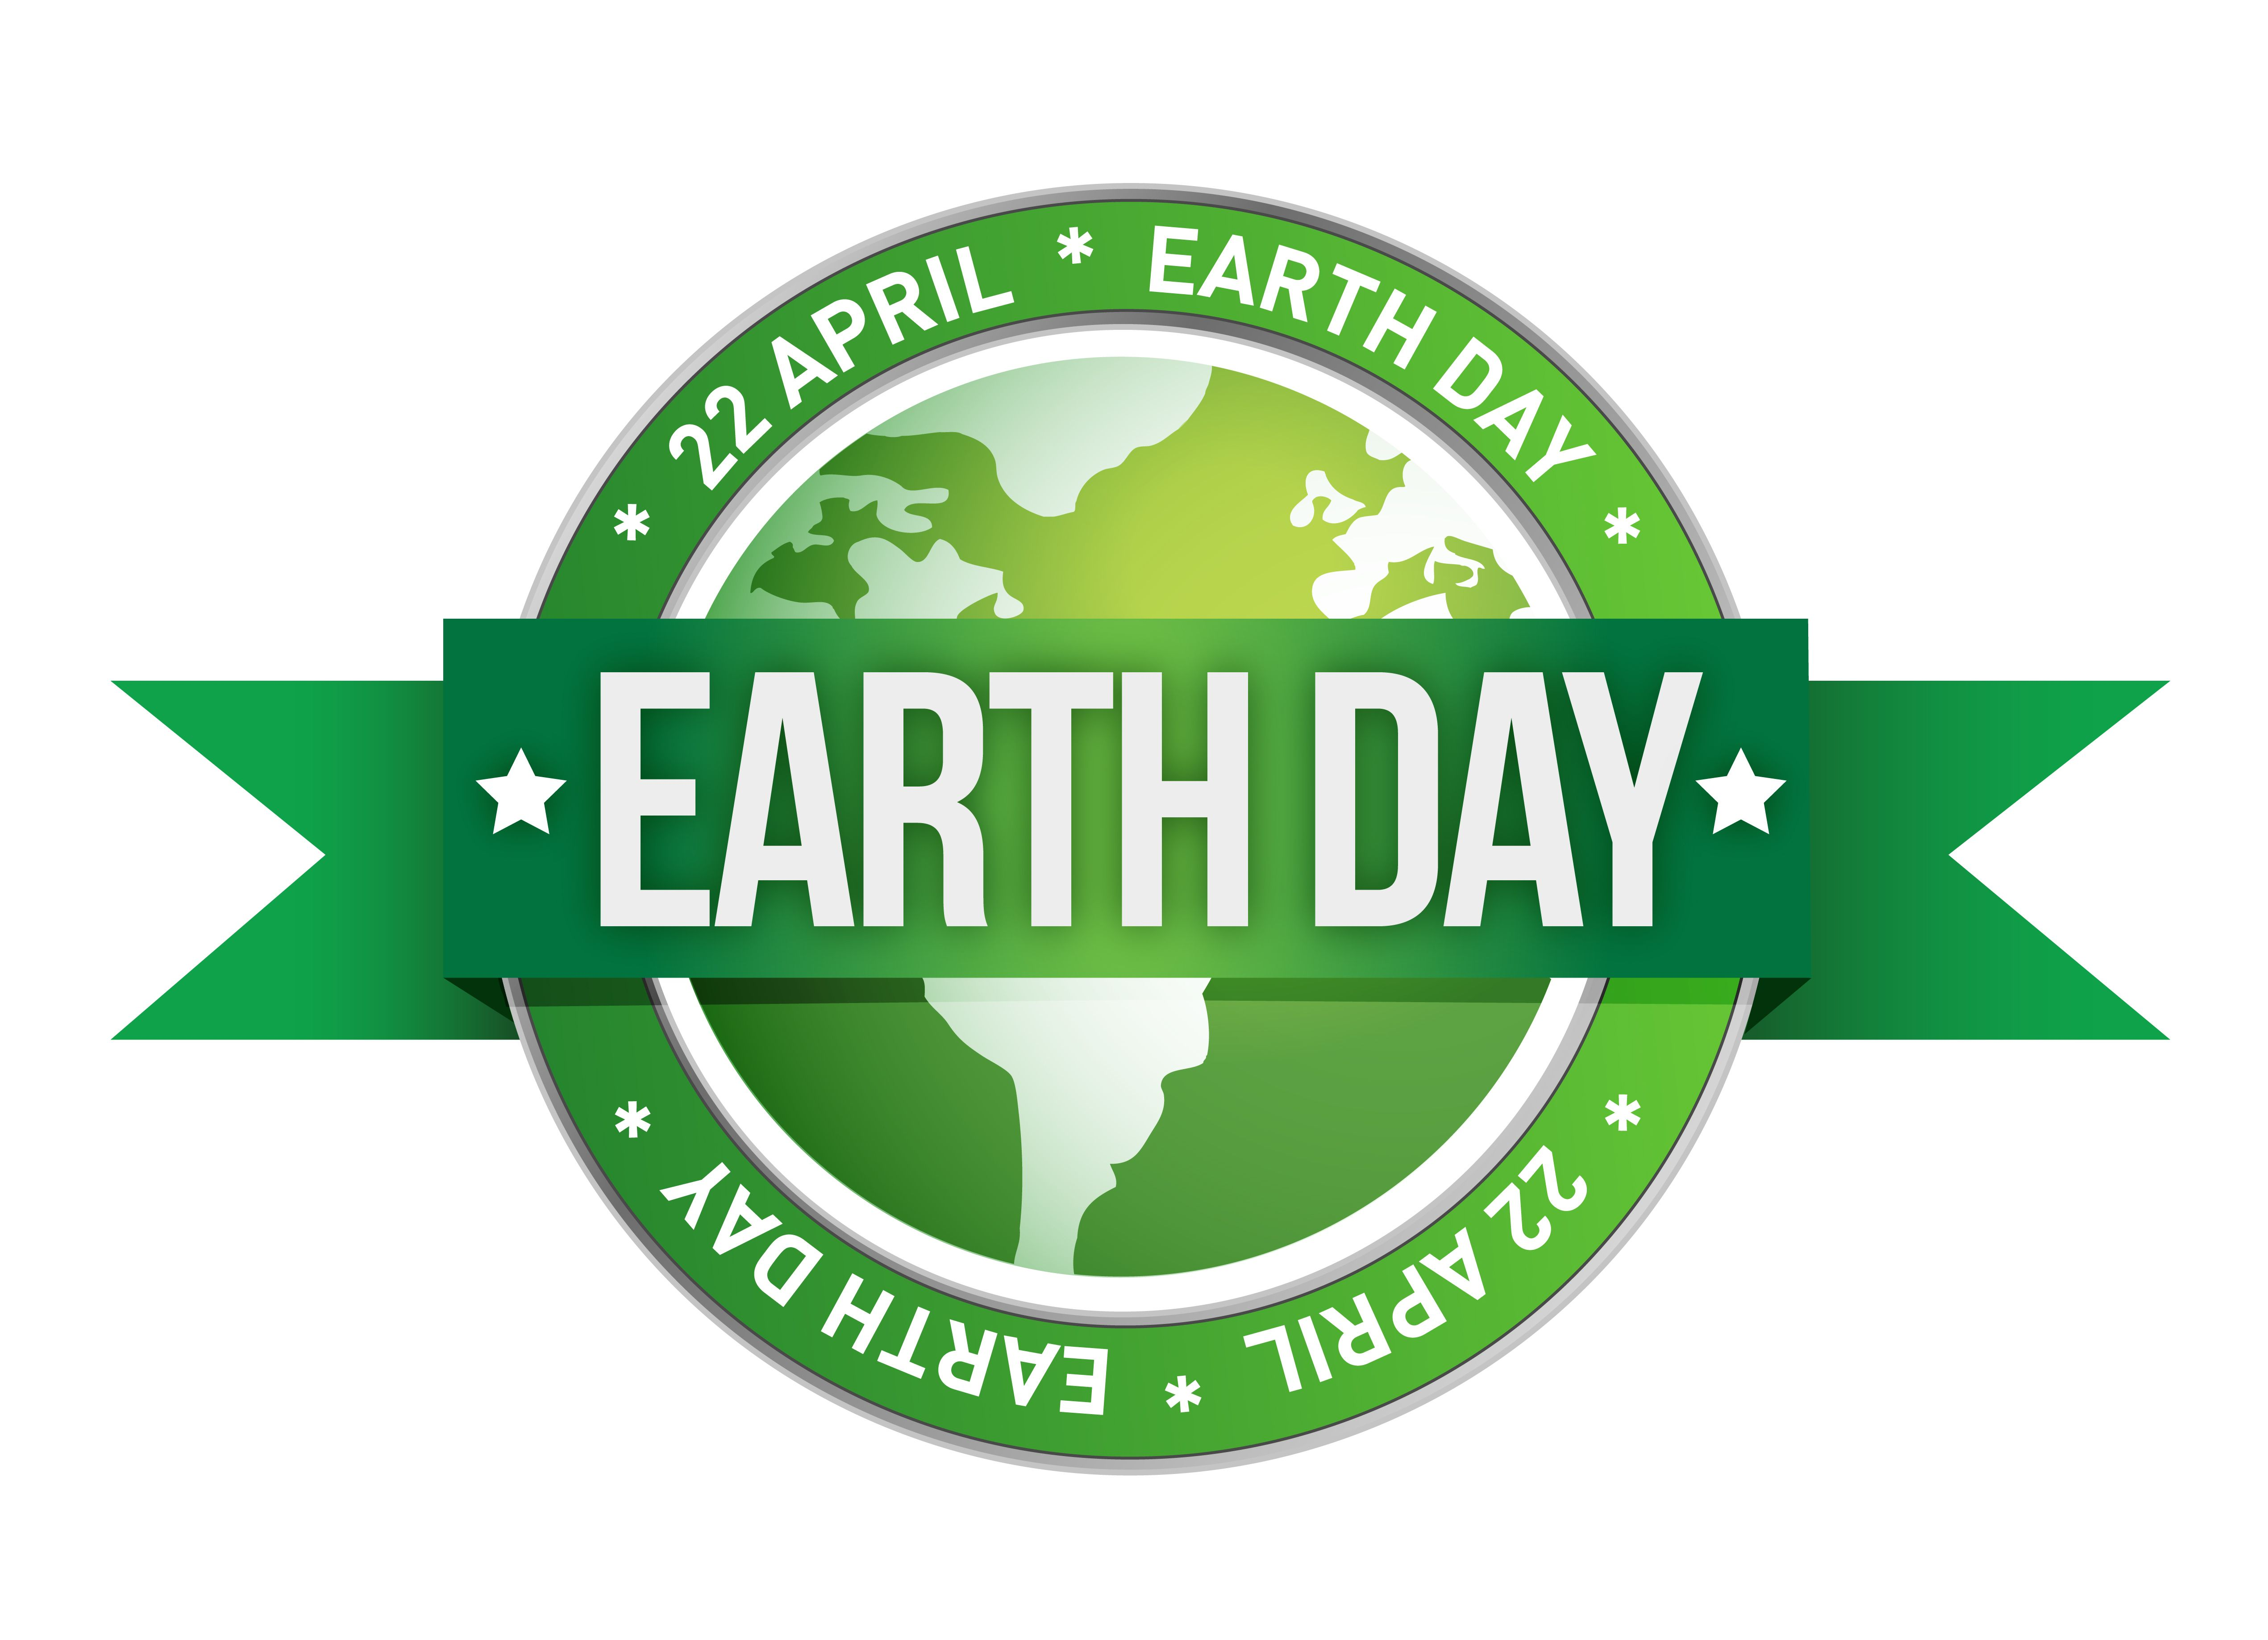 This Will Mark The 45th Anniversary Of Earth Day The Day Is Now Celebrated In Approximately 200 Countries Iconearlyphaseservices Eart Earth Day Virtual Field Trips Earth